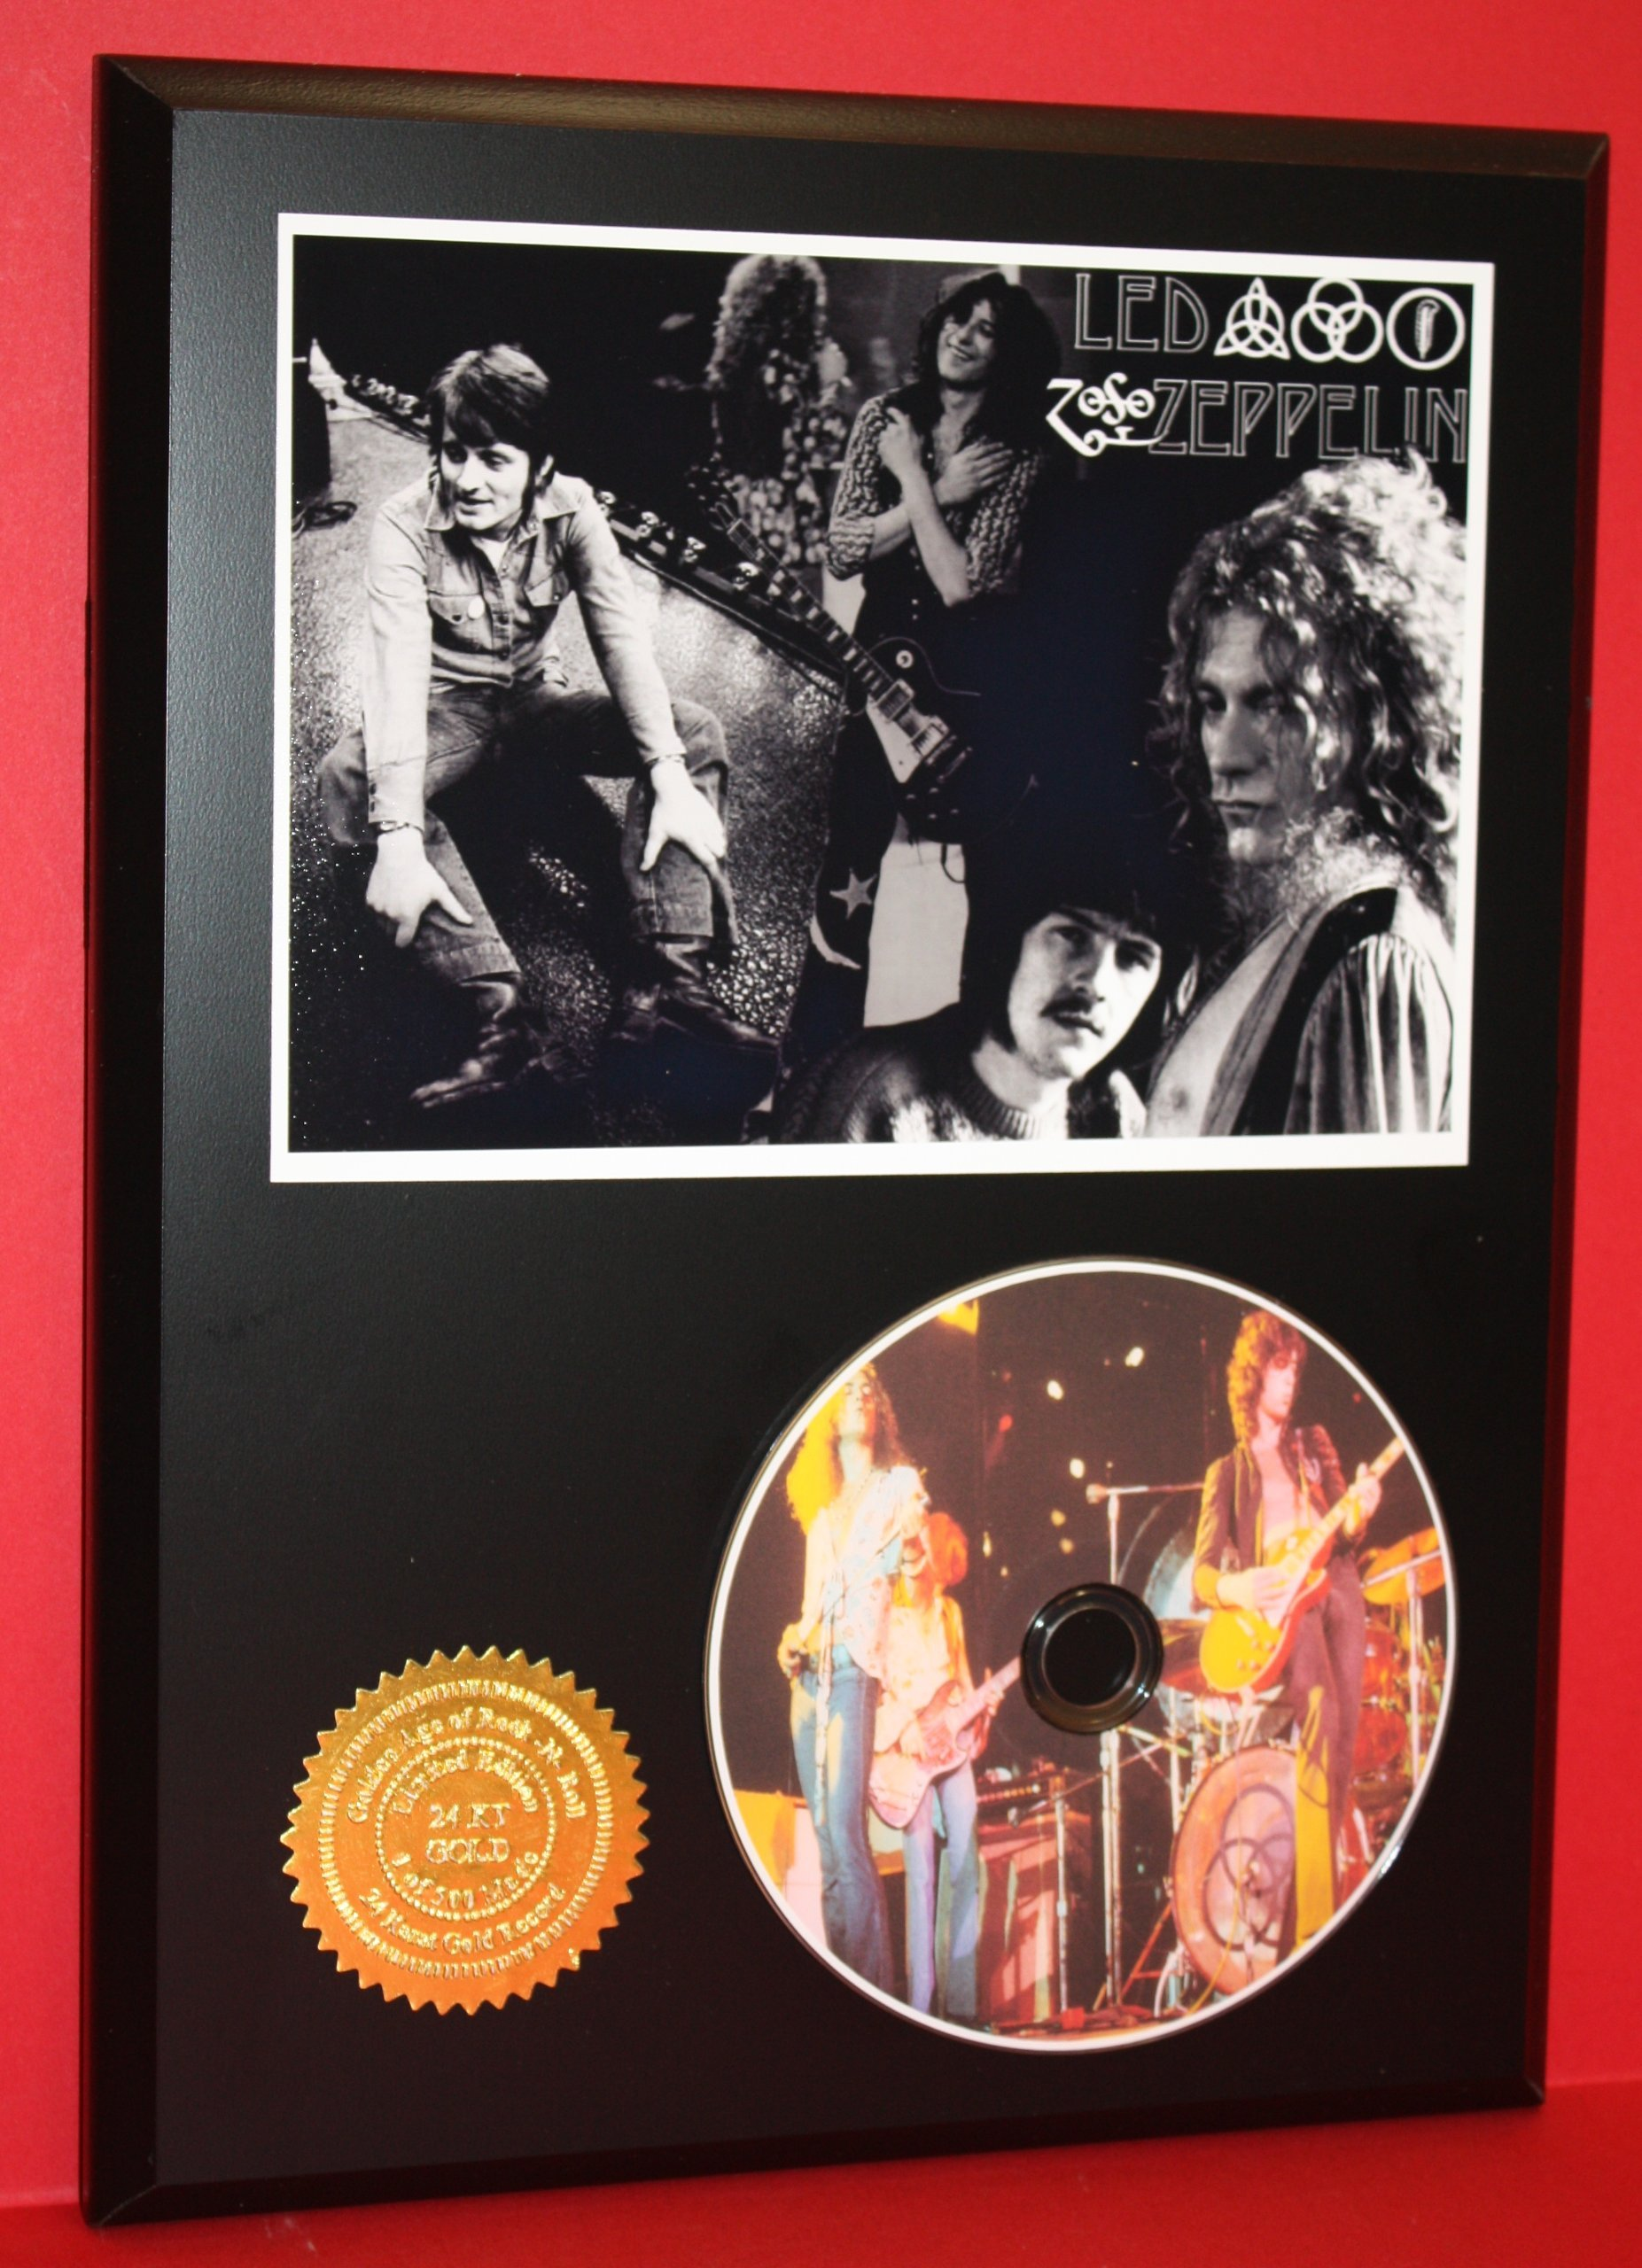 Led Zeppelin Limited Edition Picture Disc CD Rare Collectible Music Display